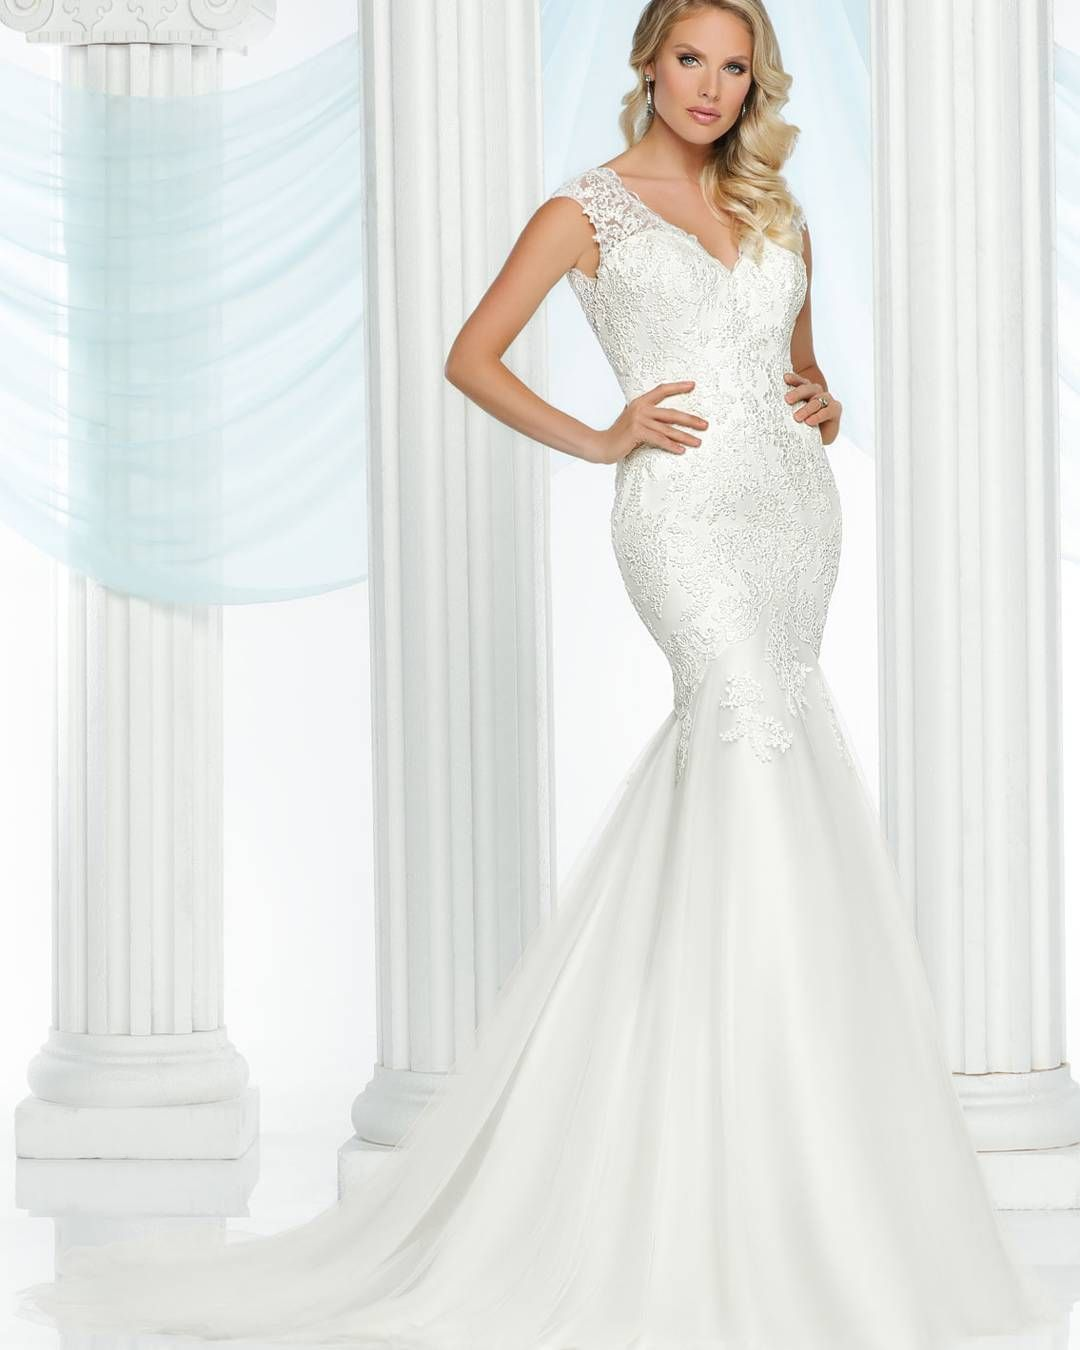 For all of you curvy brides out there this davincibridal gown will